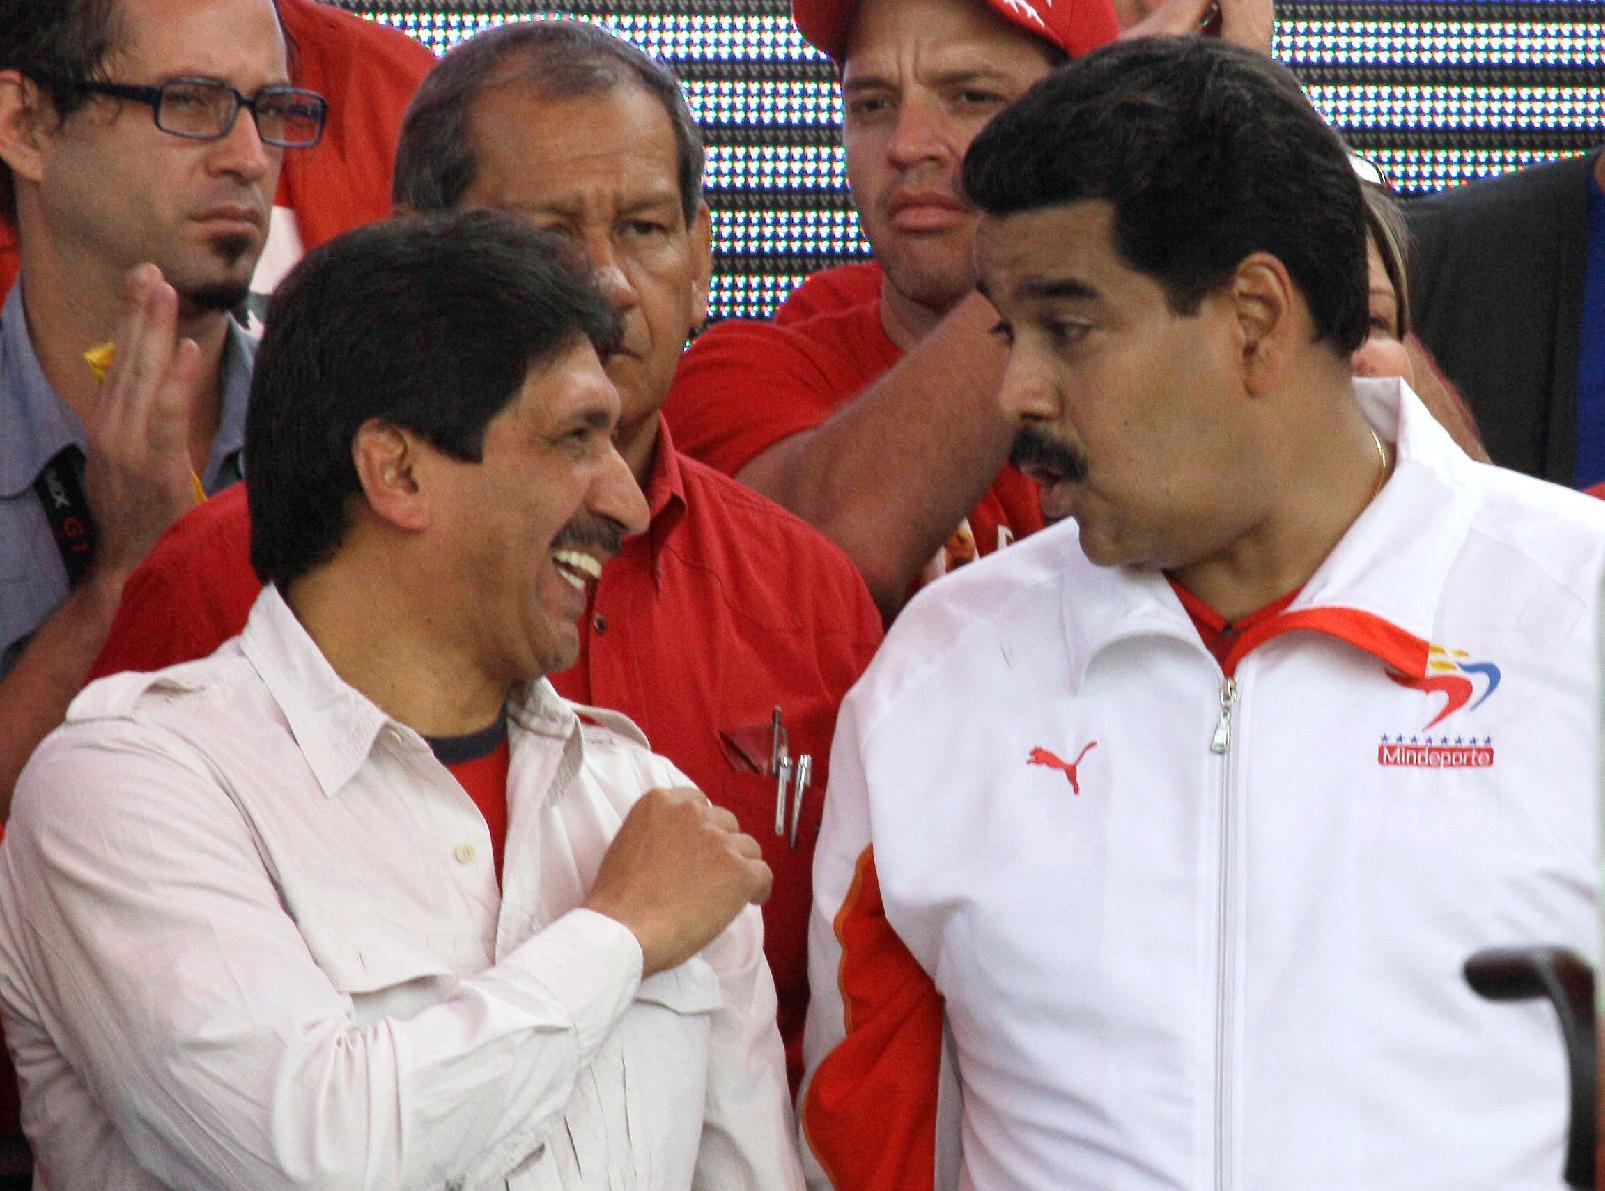 Venezuela's Vice President Nicolas Maduro, right, speaks with Argenis Chavez, a brother of President Hugo Chavez, during an event commemorating the 1958 fall of the country's dictatorship in Caracas, Venezuela, Wednesday, Jan. 23, 2013. Maduro said the government has uncovered a plot by unidentified groups to attack him and another senior leader. Maduro announced the purported plot while announcing that he would soon travel to Cuba along with Oil Minister Rafael Ramirez to see ailing President Hugo Chavez. (AP Photo/Fernando Llano)